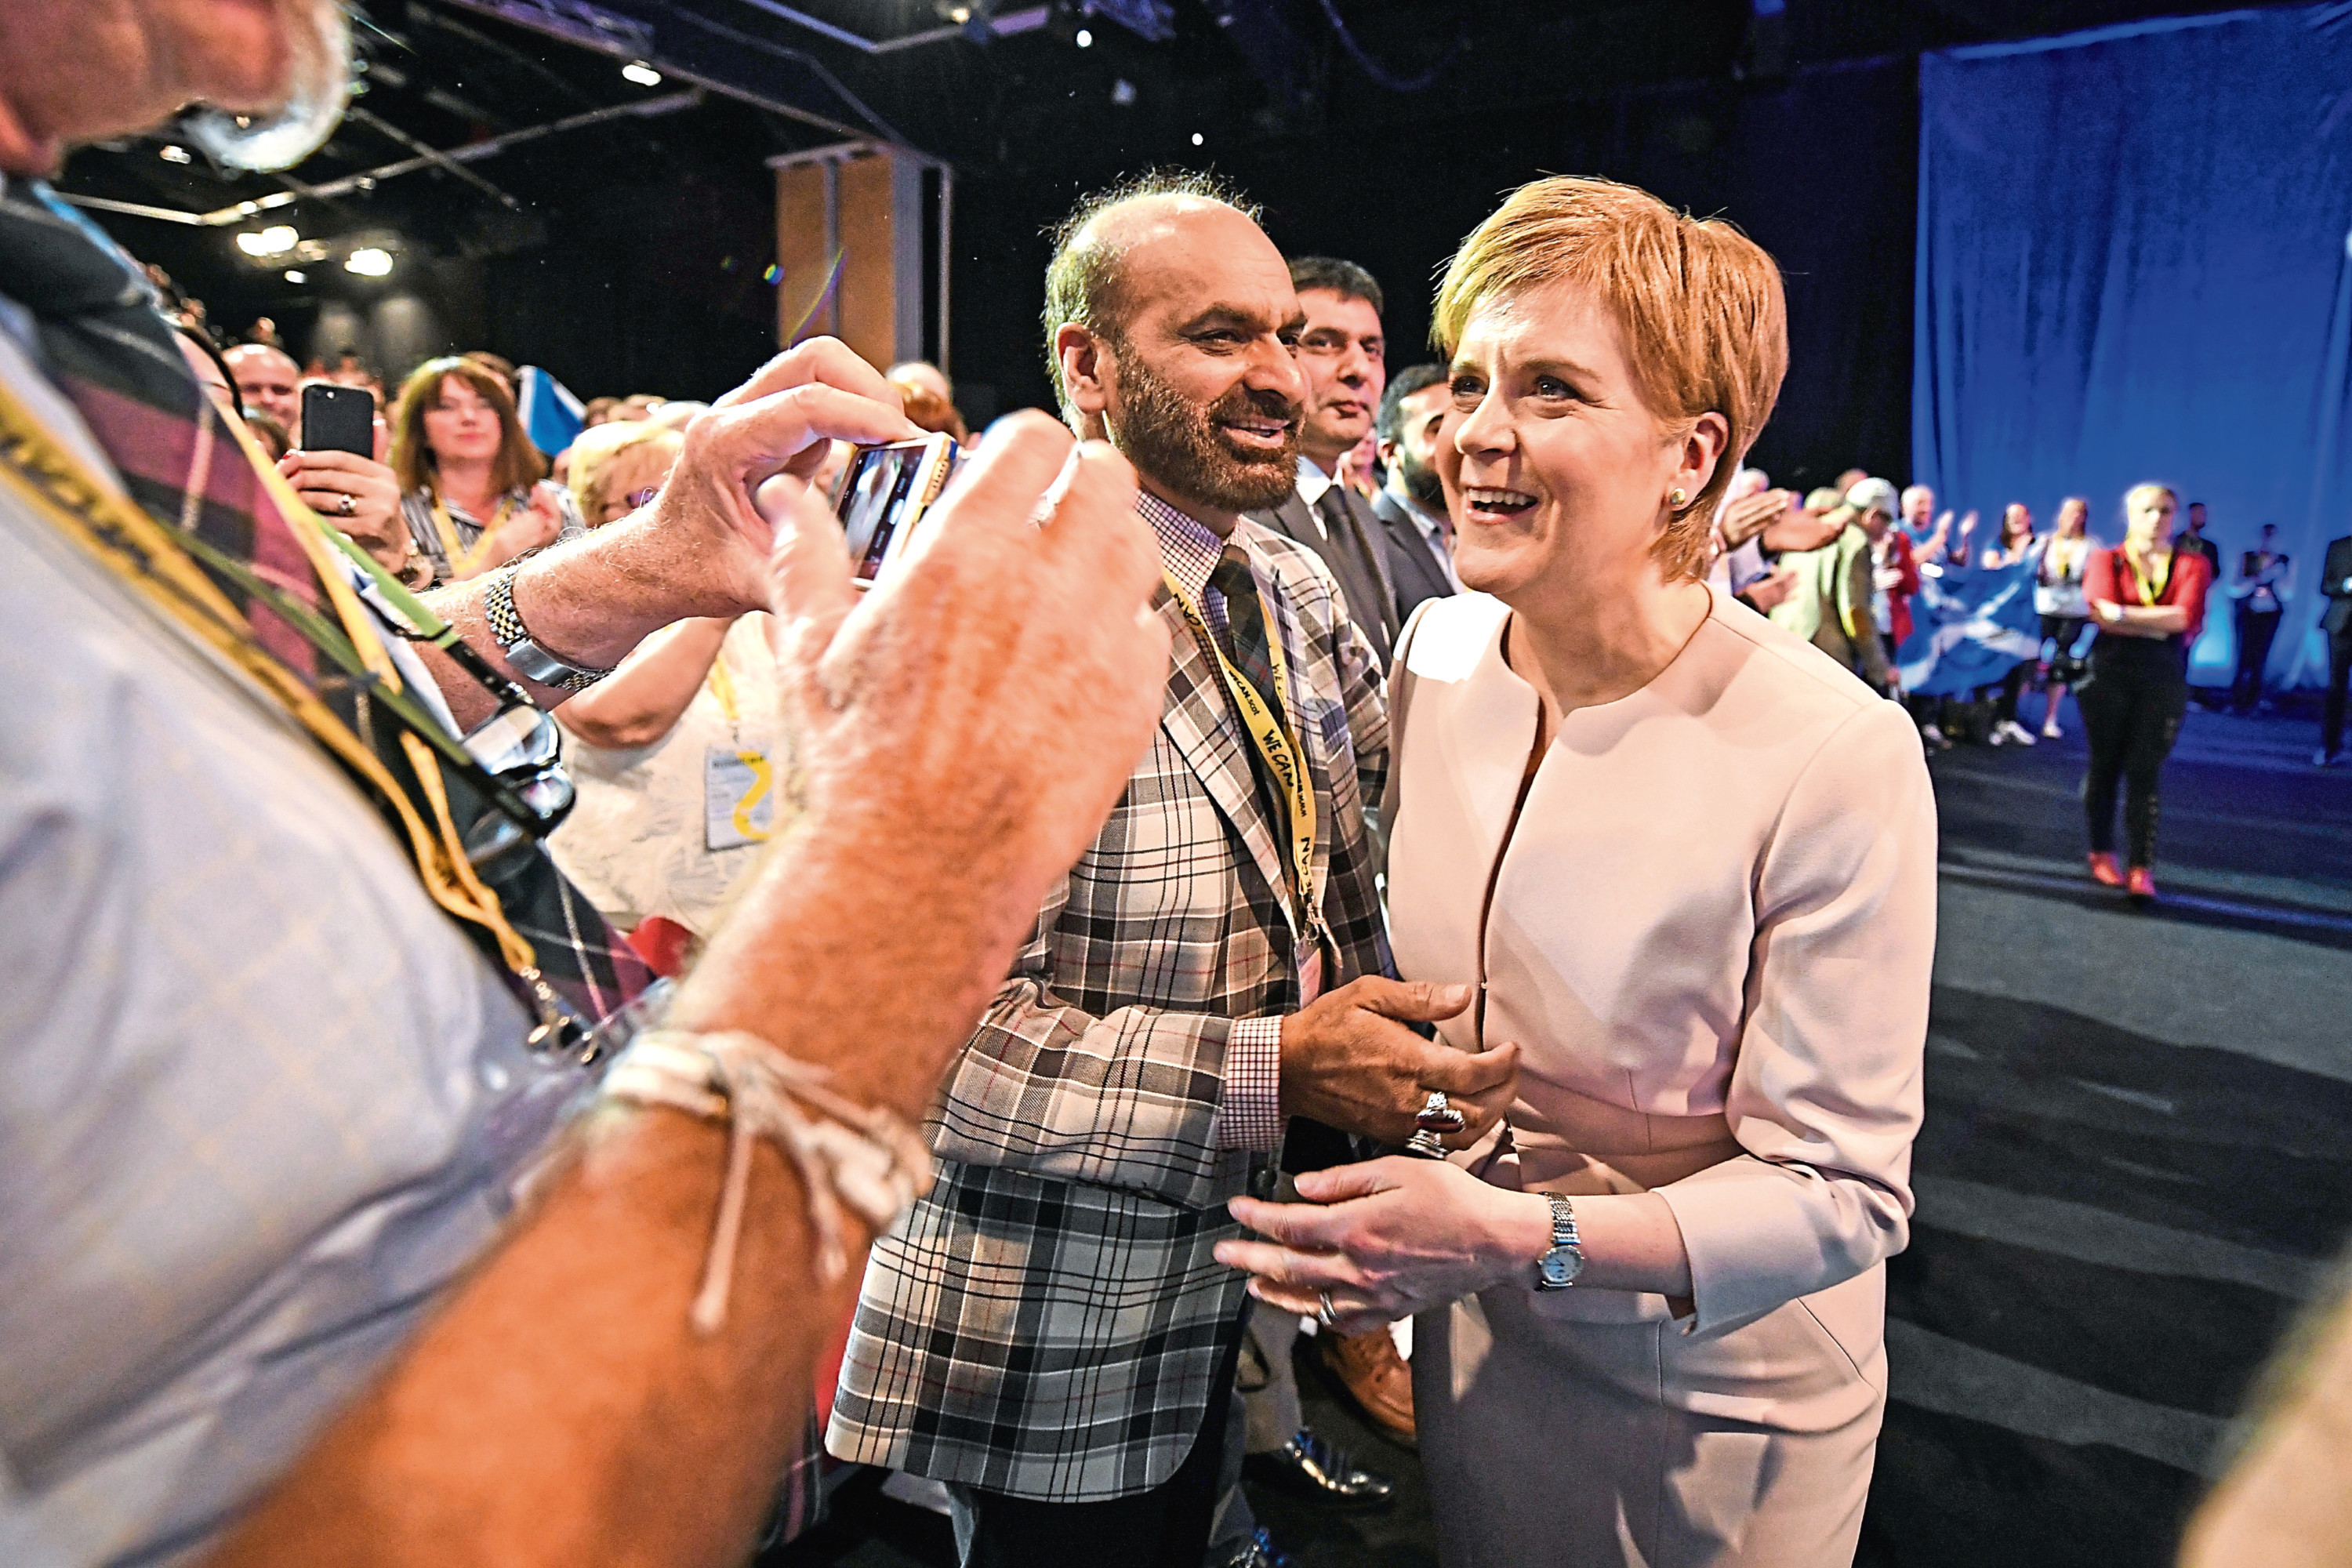 SNP leader Nicola Sturgeon meets deligates after delivering her keynote speech (Jeff J Mitchell/Getty Images)